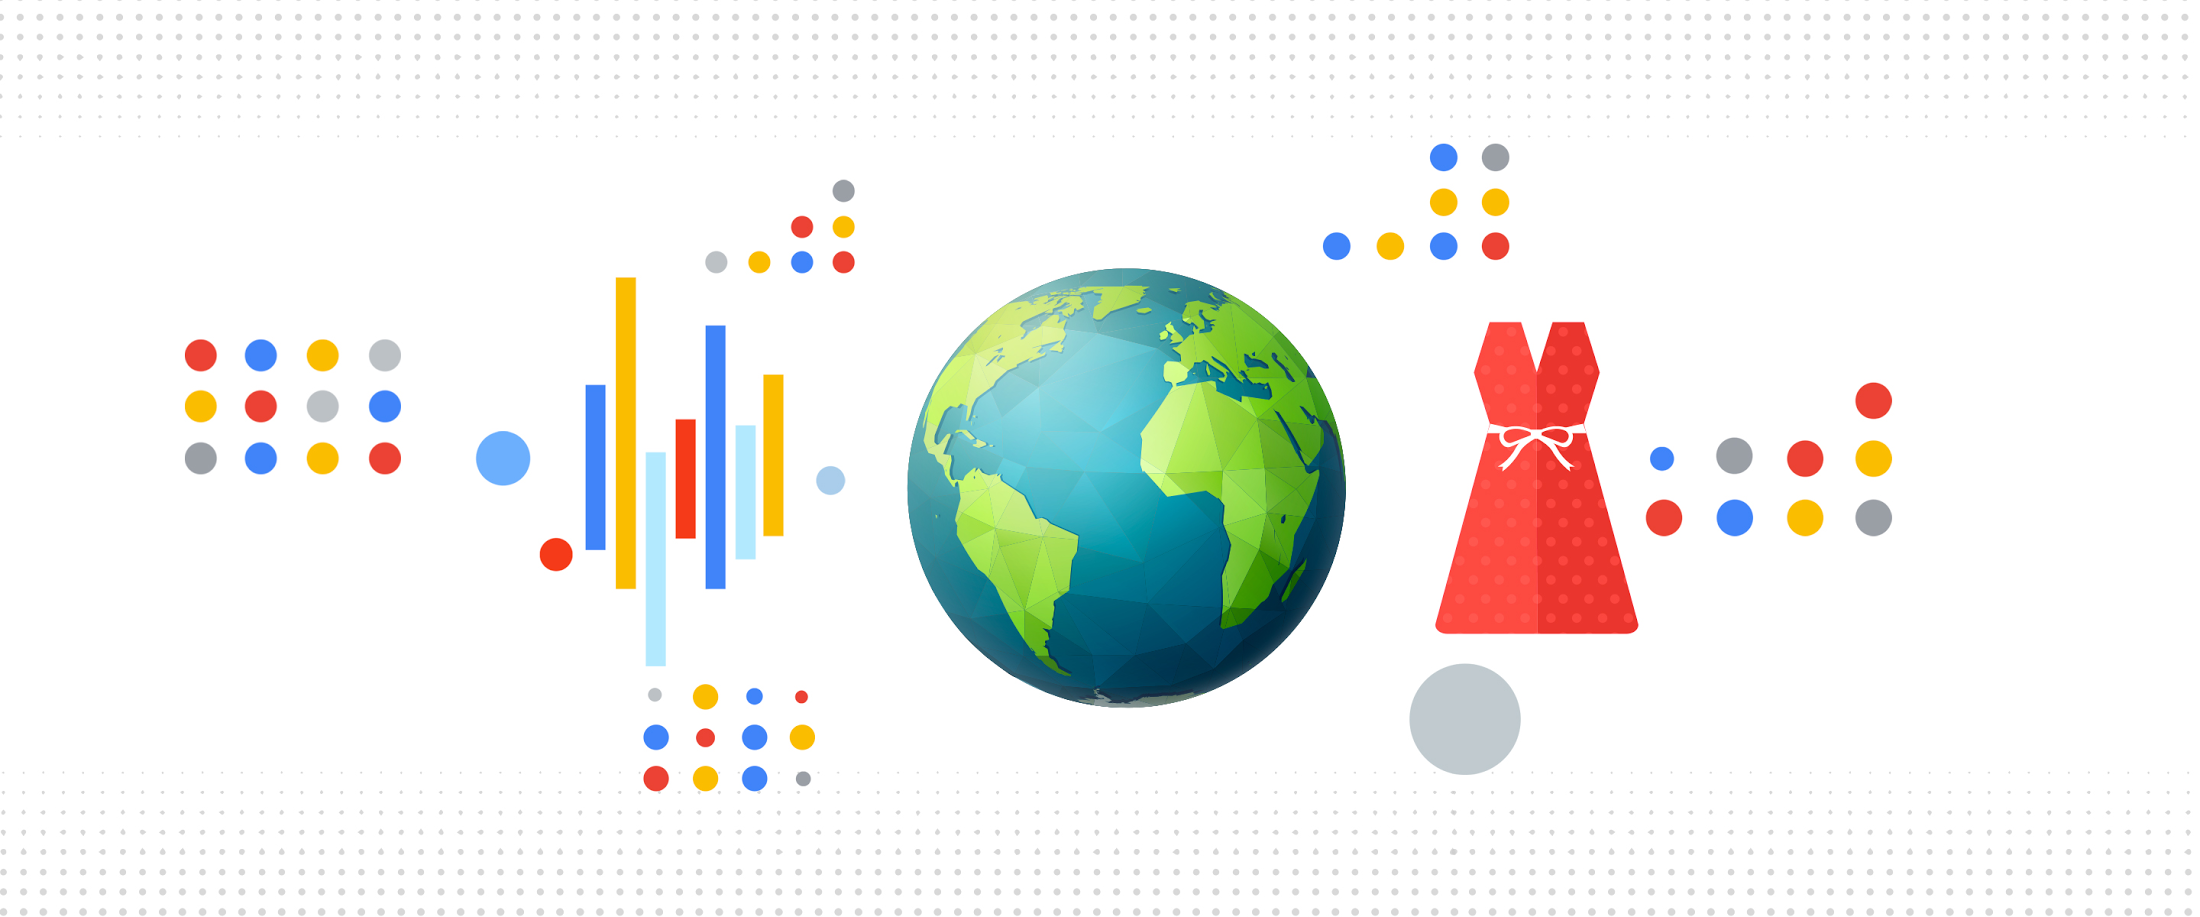 Google's new pilot aiming to measure the environmental impact of the fashion industry | Google Cloud Blog